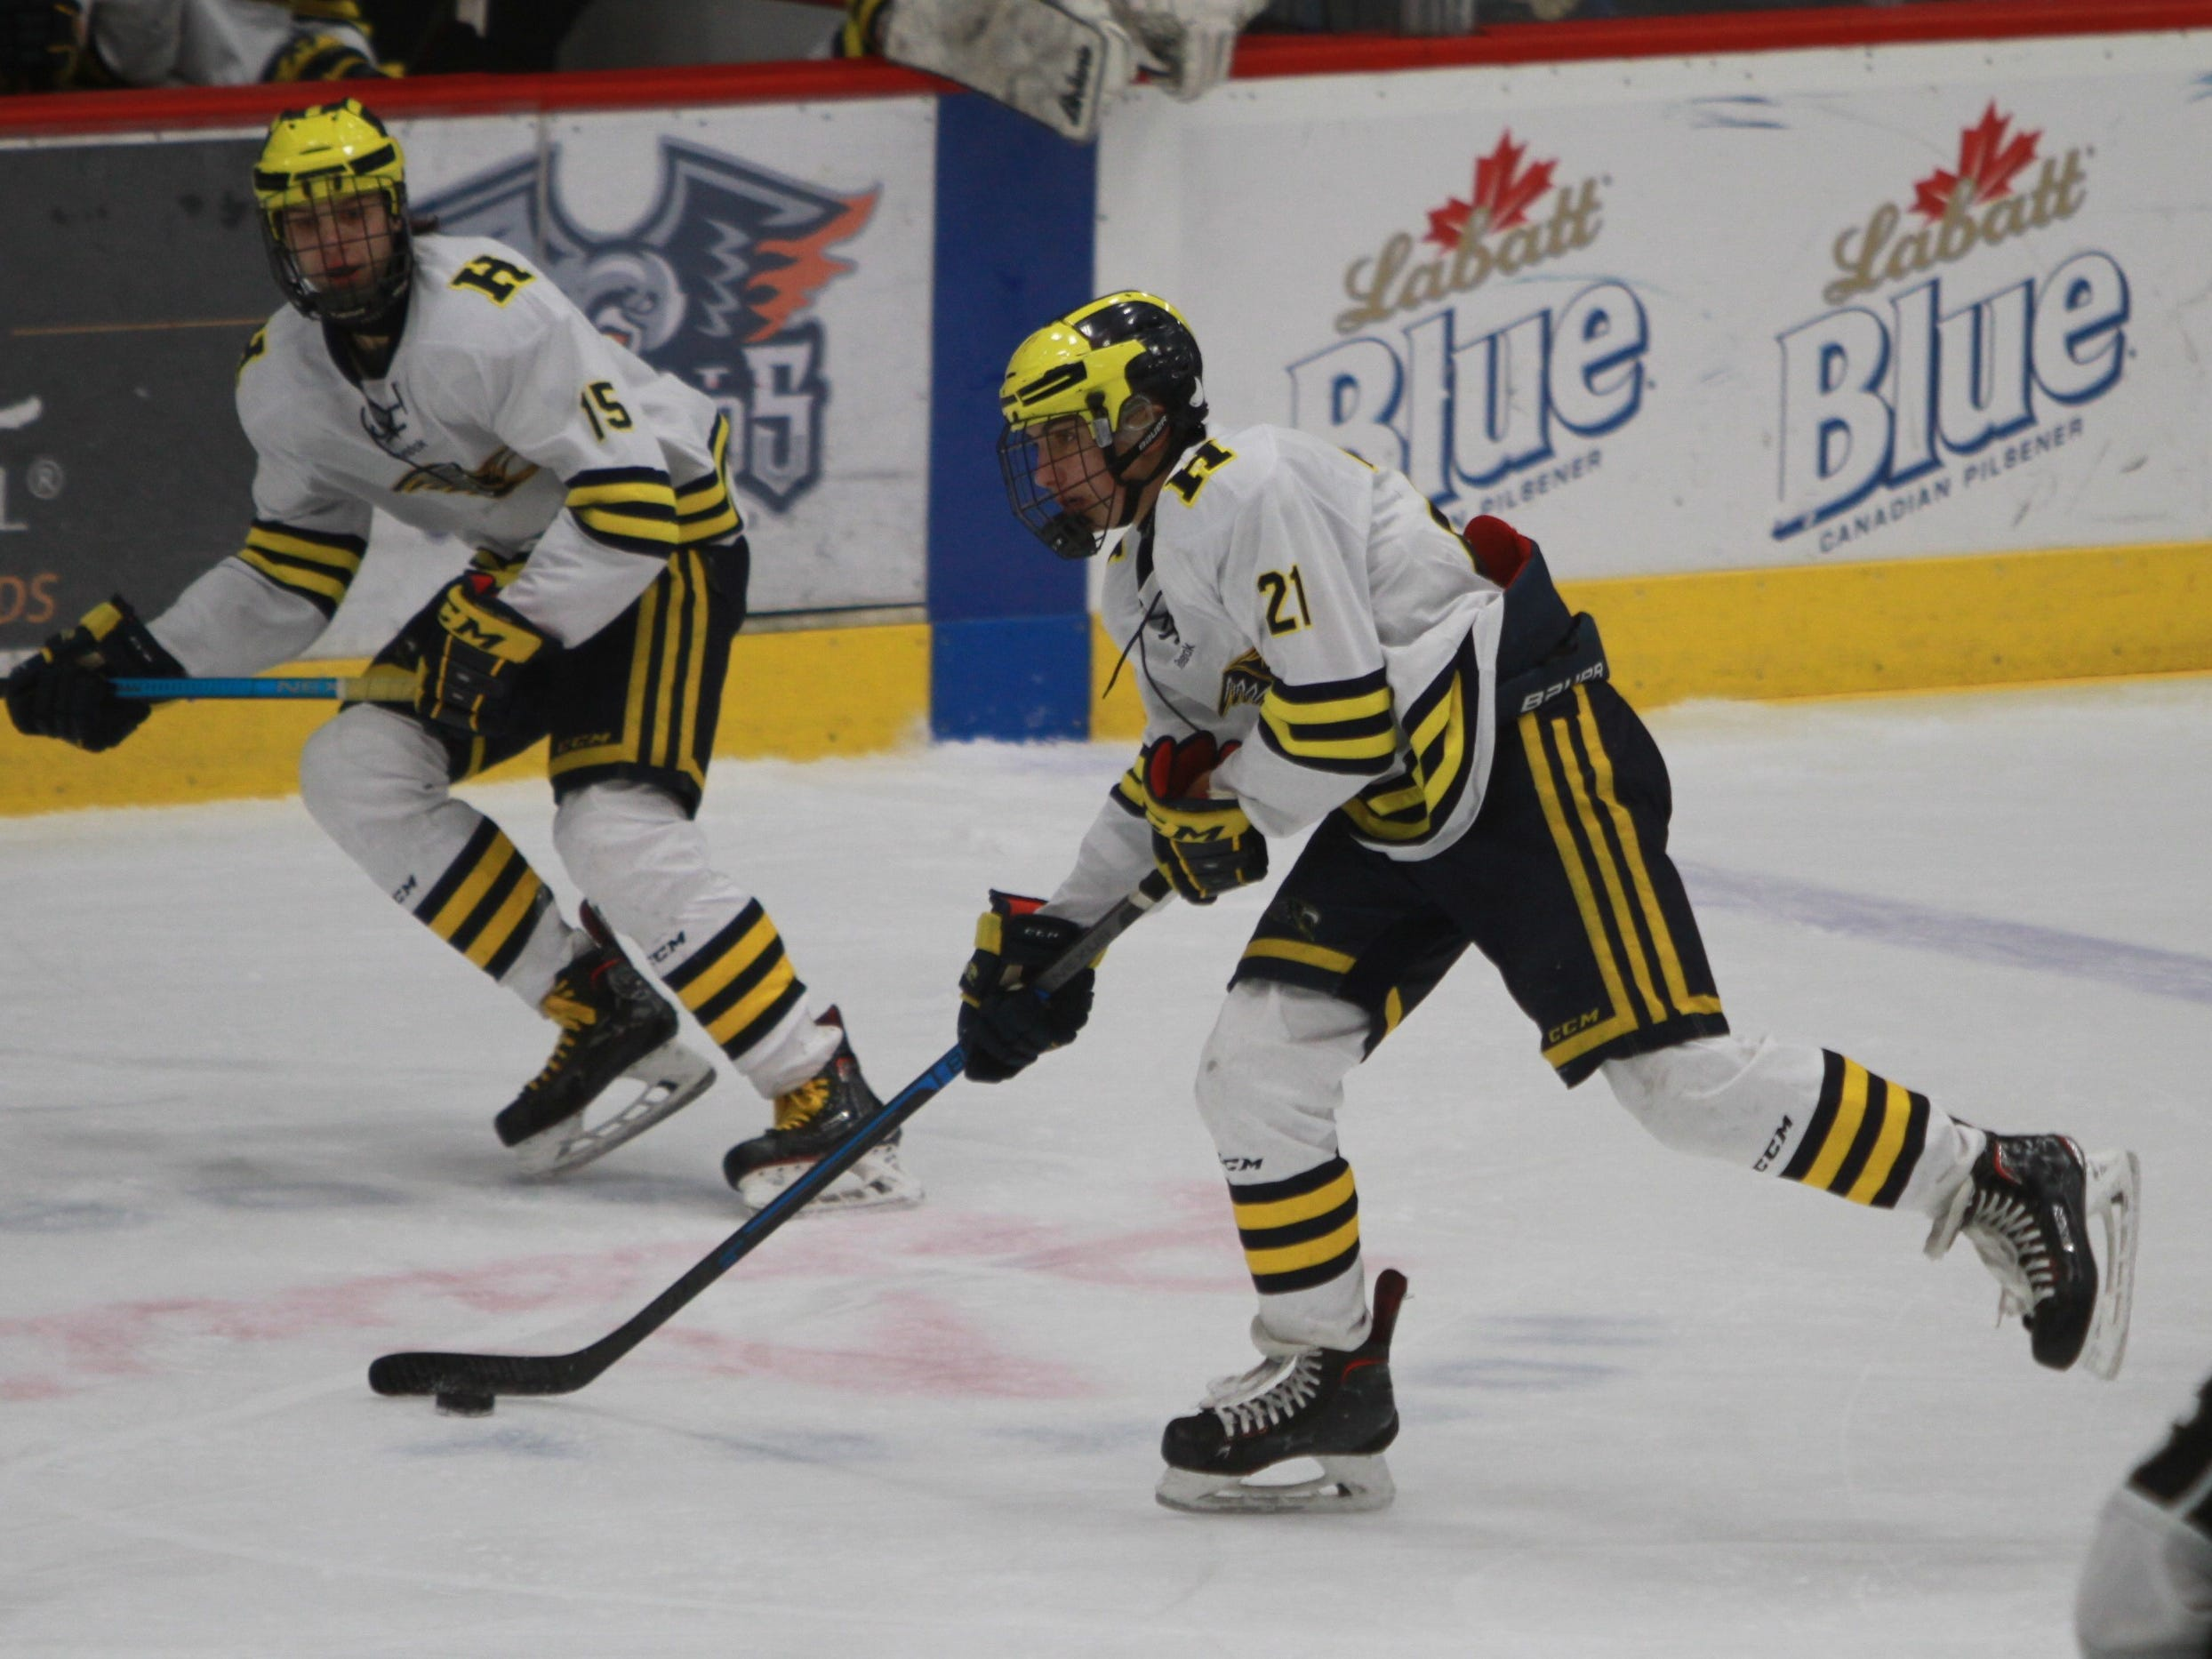 Hartland's Trent Krause (21), who scored the game's second goal, carries the puck up the ice while flanked by John Druskinis (15) during a 6-0 victory over Forest Hills Eastern in the state Division 2 hockey quarterfinals in Flint on Tuesday, March 5, 2019.